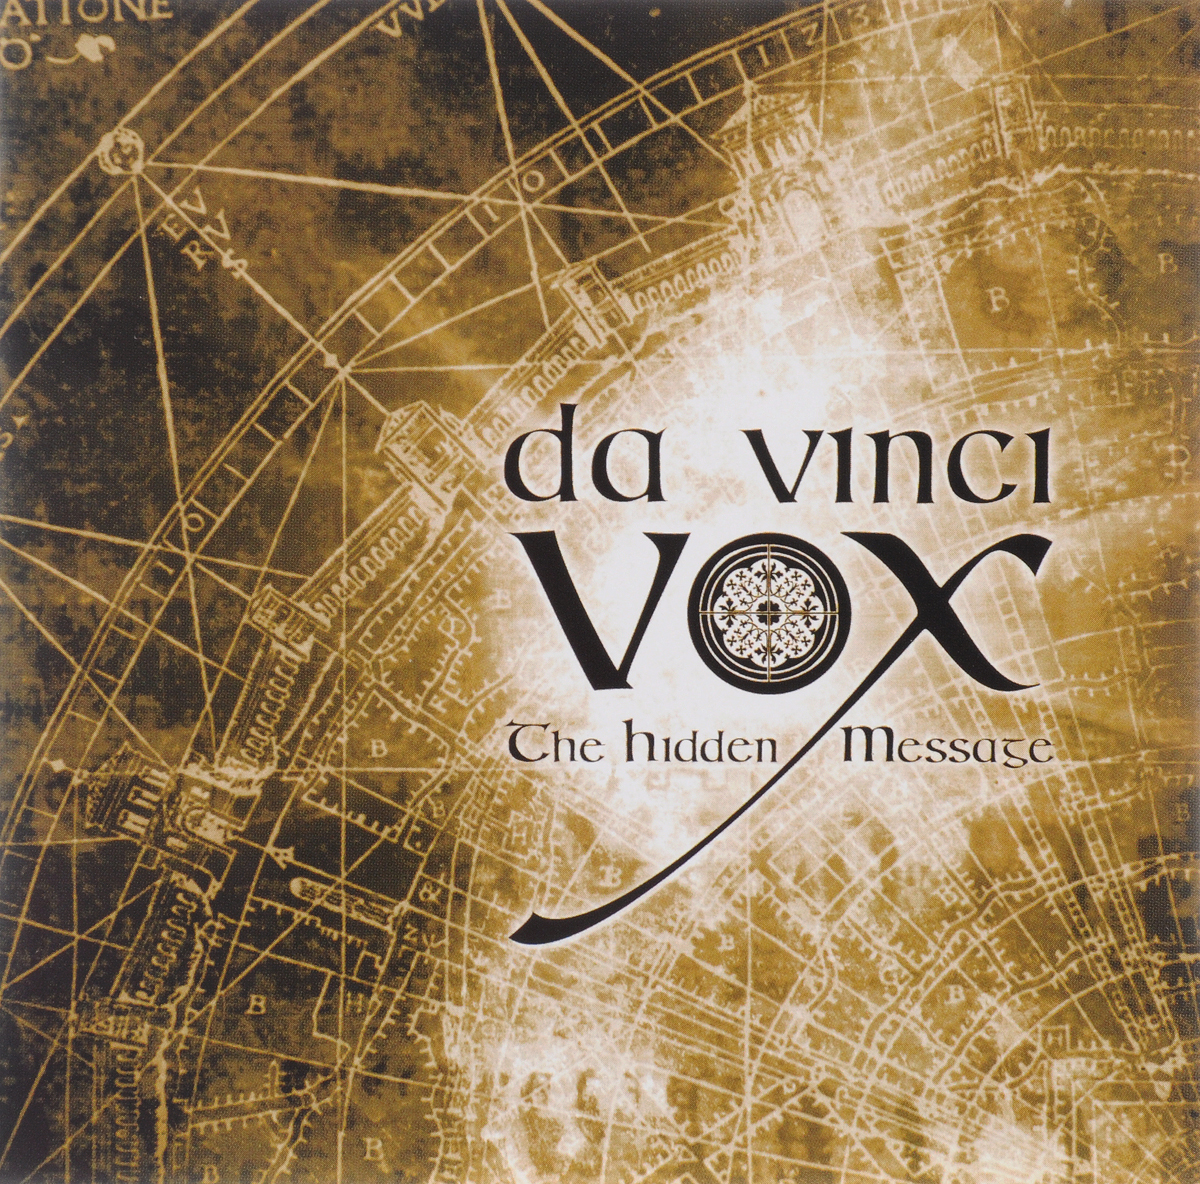 Da Vinci Vox DA VINCI VOX. THE HIDDEN MESSAGE vox mv50 cr set